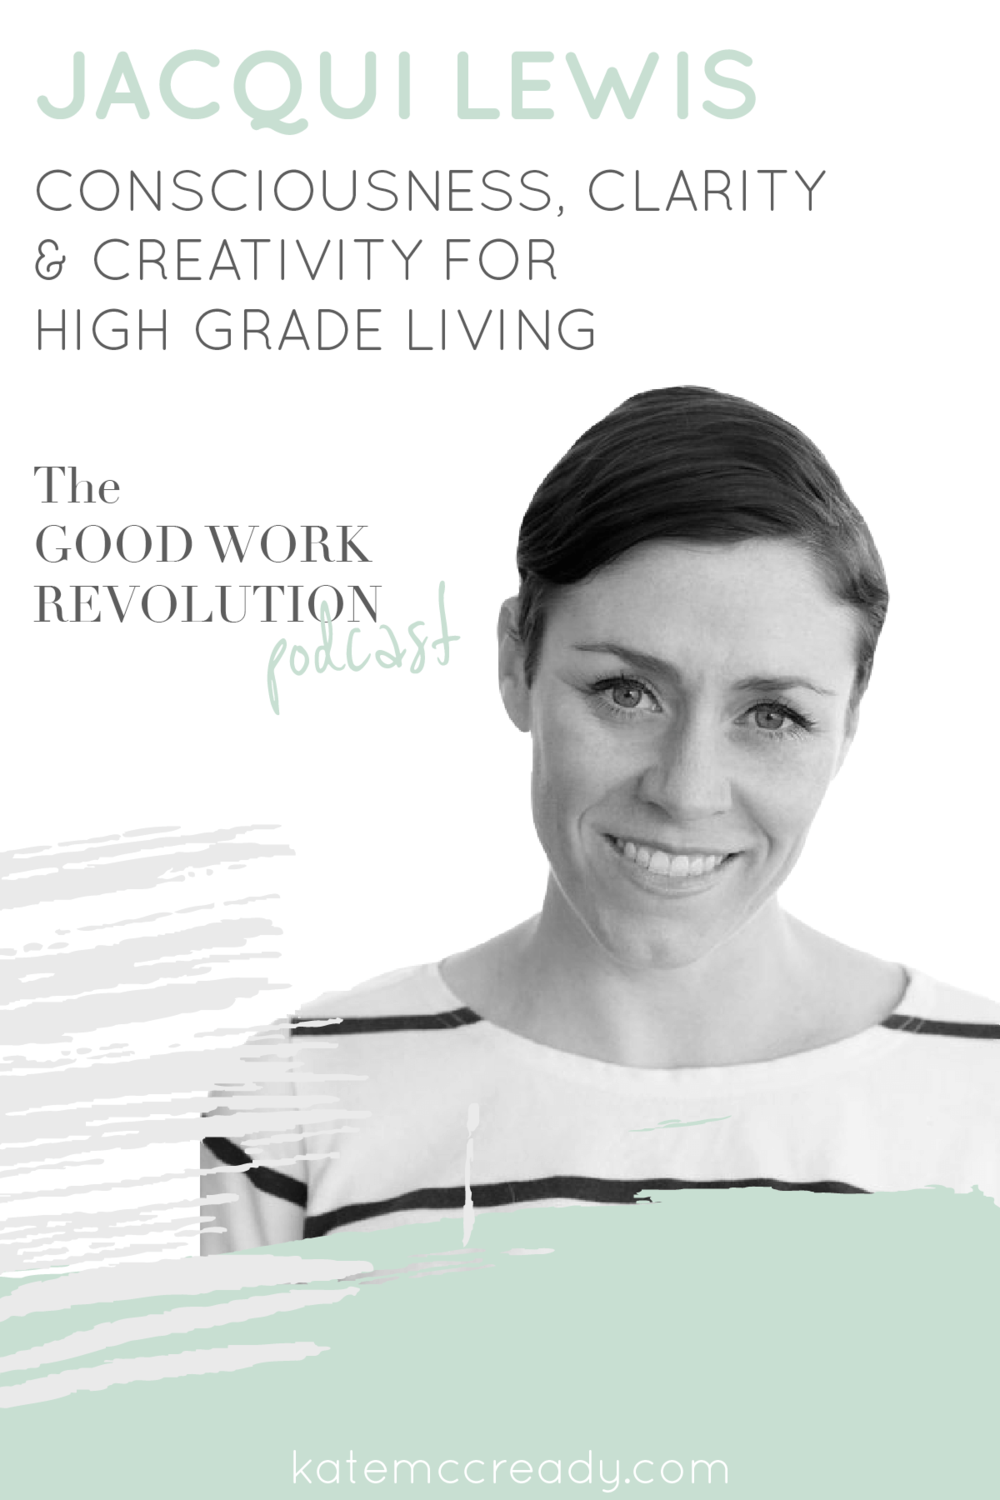 Jacqui-Lewis-Consciousness-Clarity-Creativity-for-High-Grade-Living.png